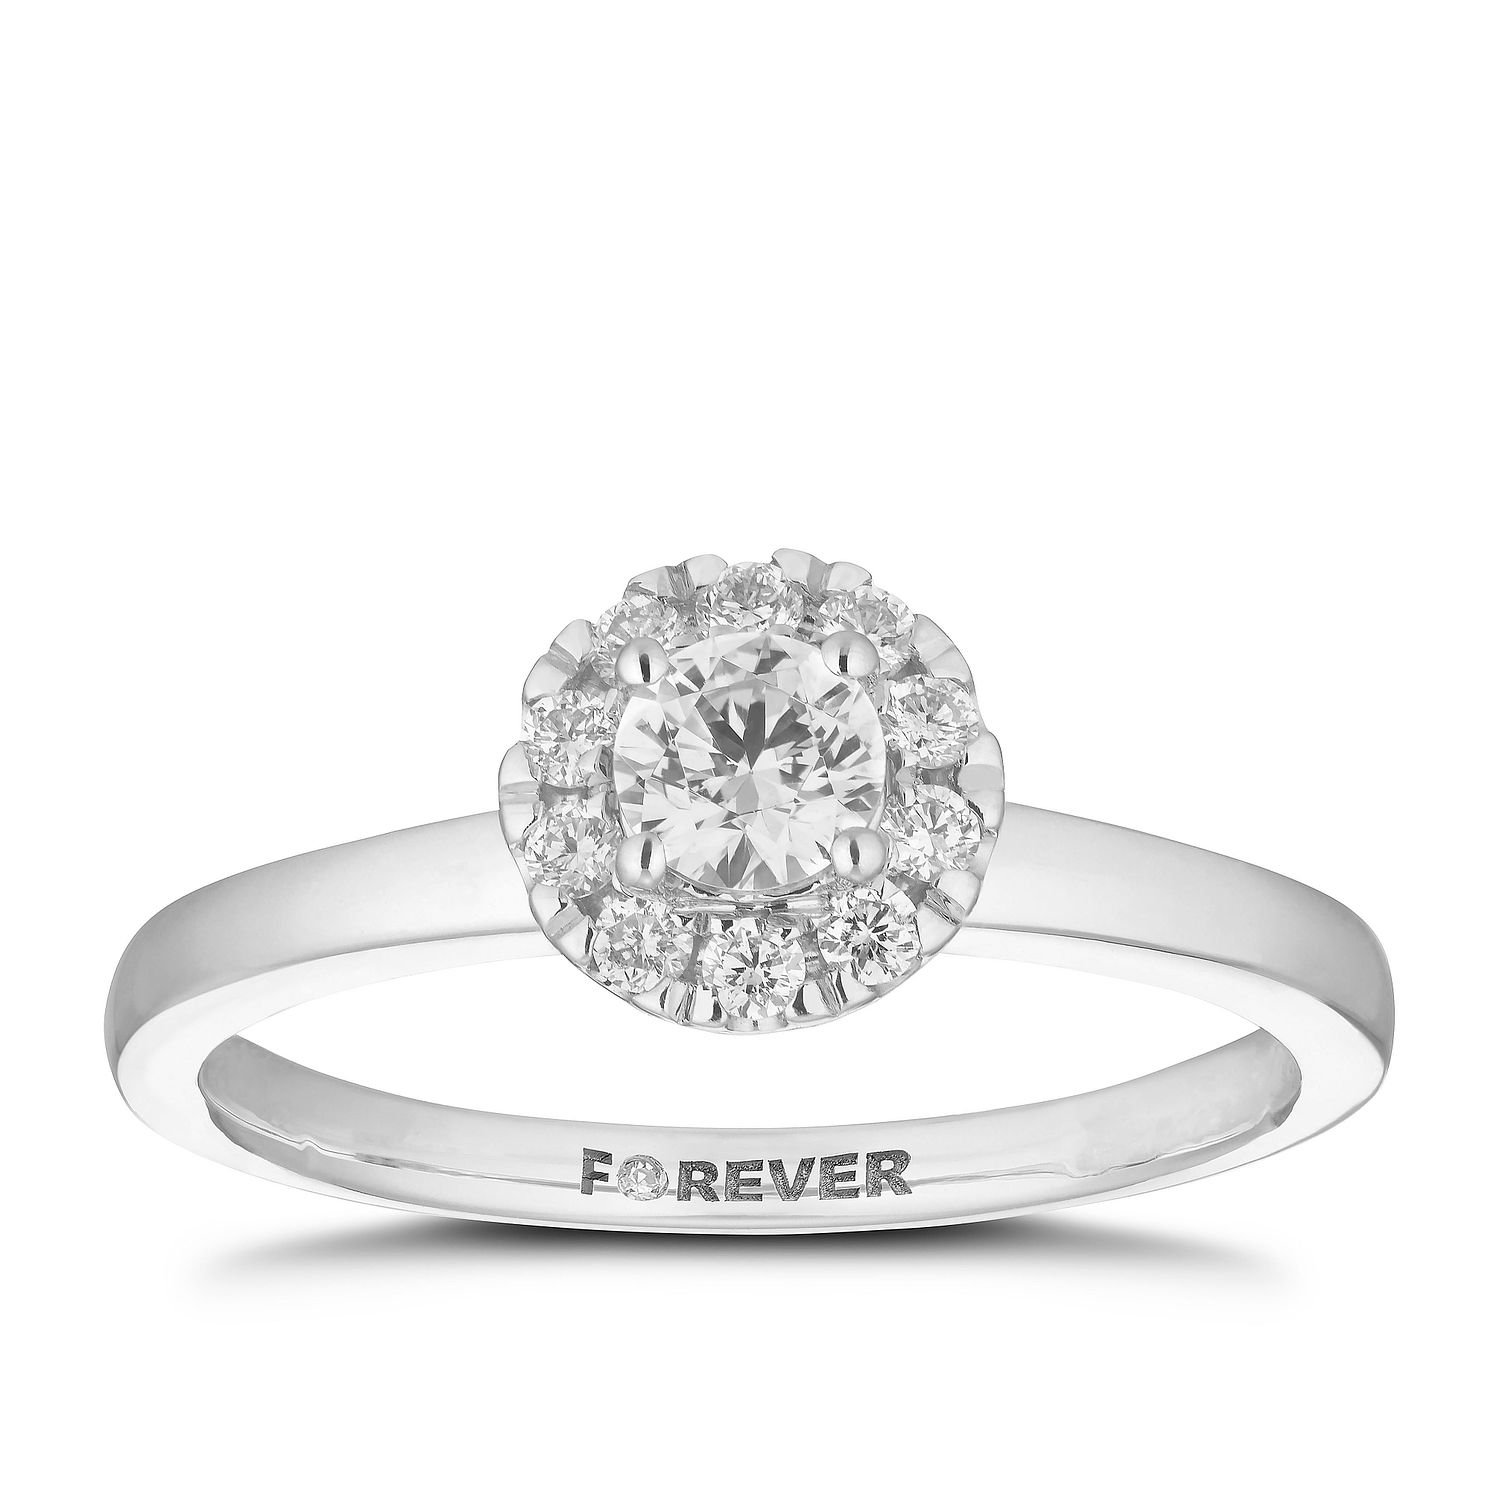 18ct White Gold 2/5ct Forever Diamond Ring - Product number 5863163